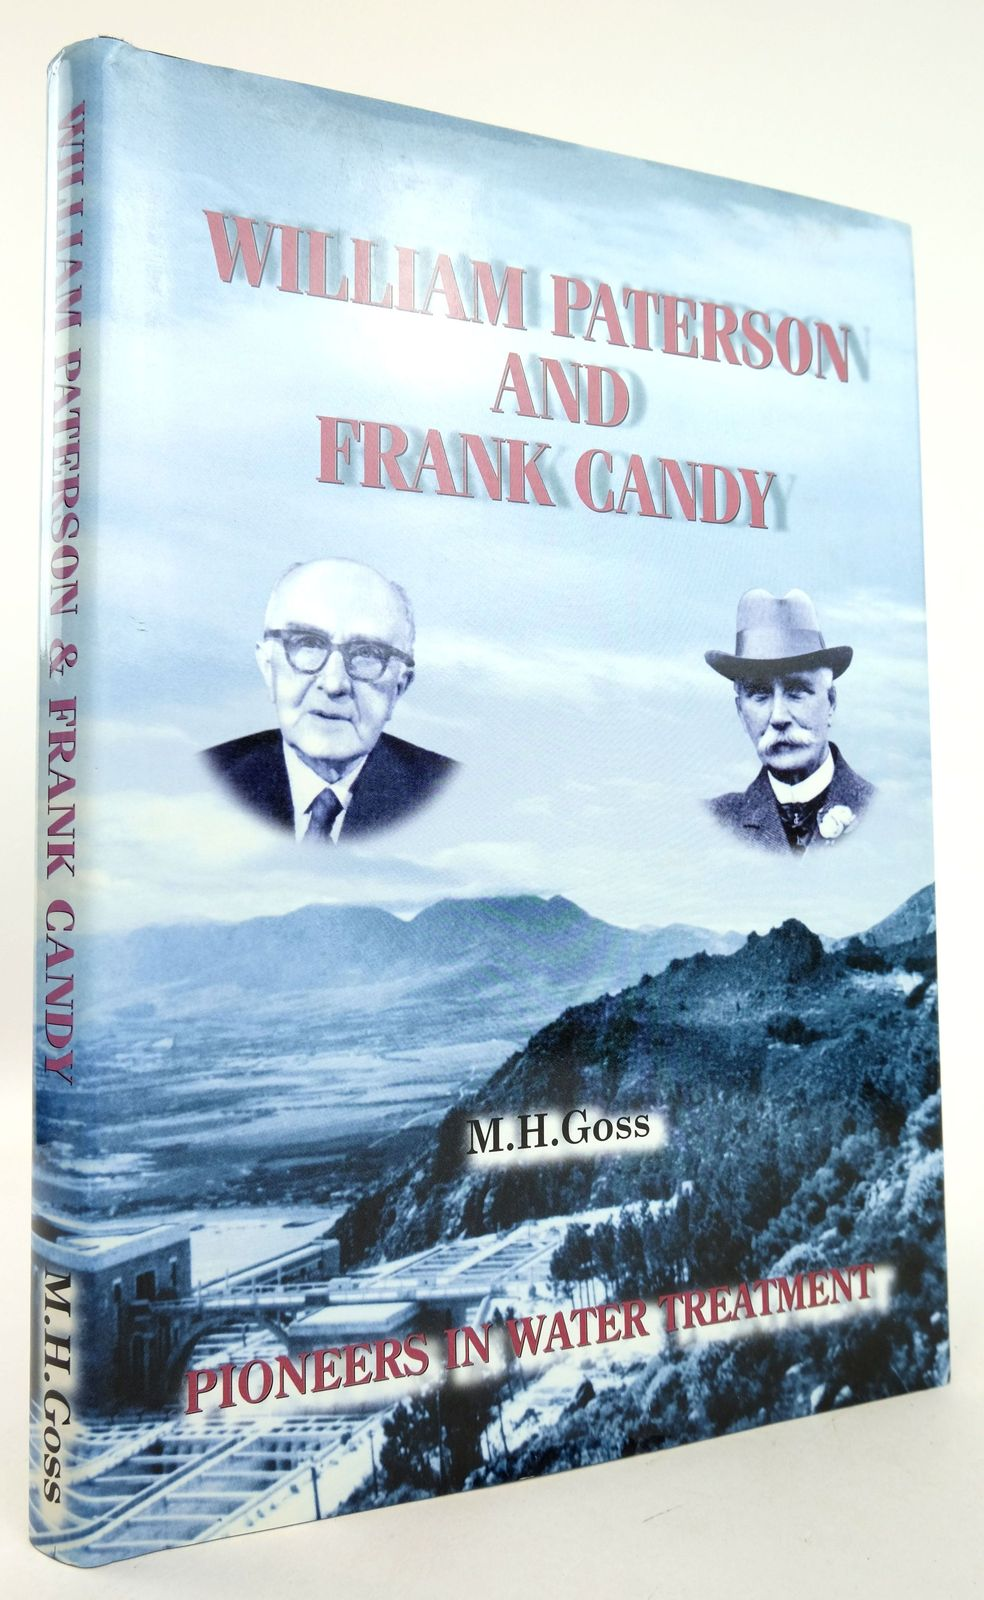 Photo of WILLIAM PATERSON AND FRANK CANDY written by Goss, M.H. published by Paterson Candy Ltd (STOCK CODE: 1819362)  for sale by Stella & Rose's Books